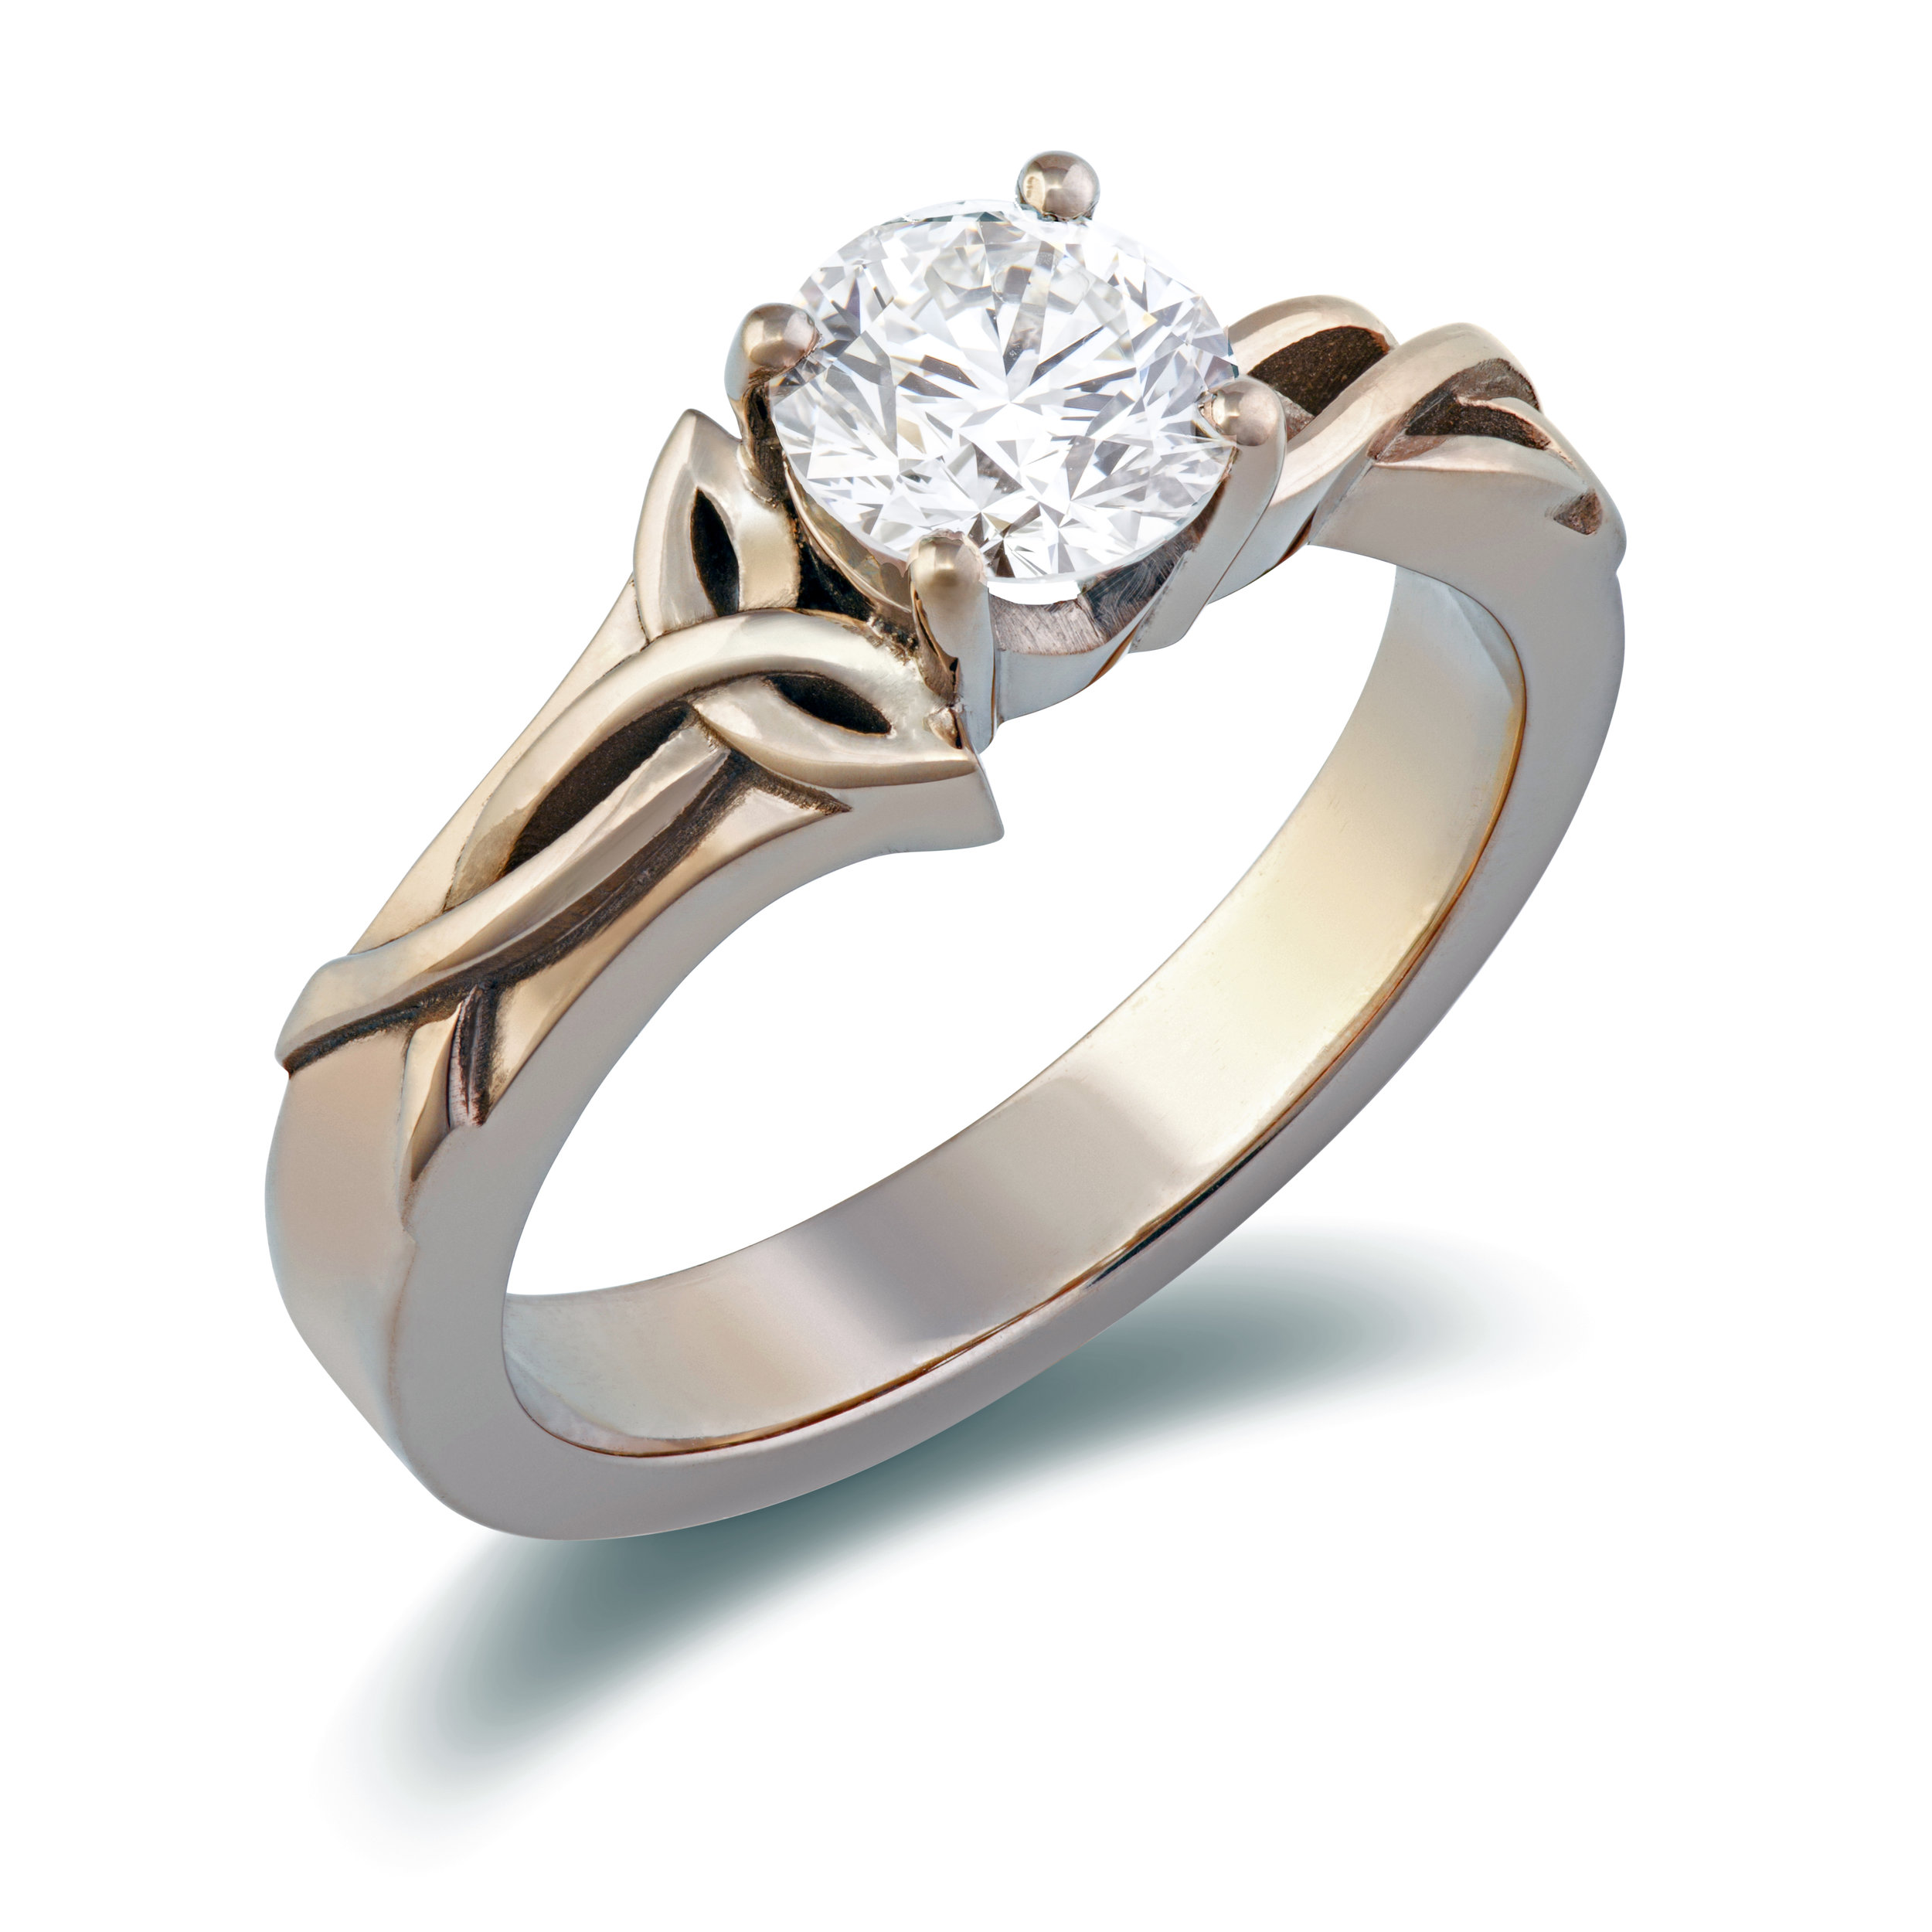 Bespoke 18ct white gold and diamond dress ring commission